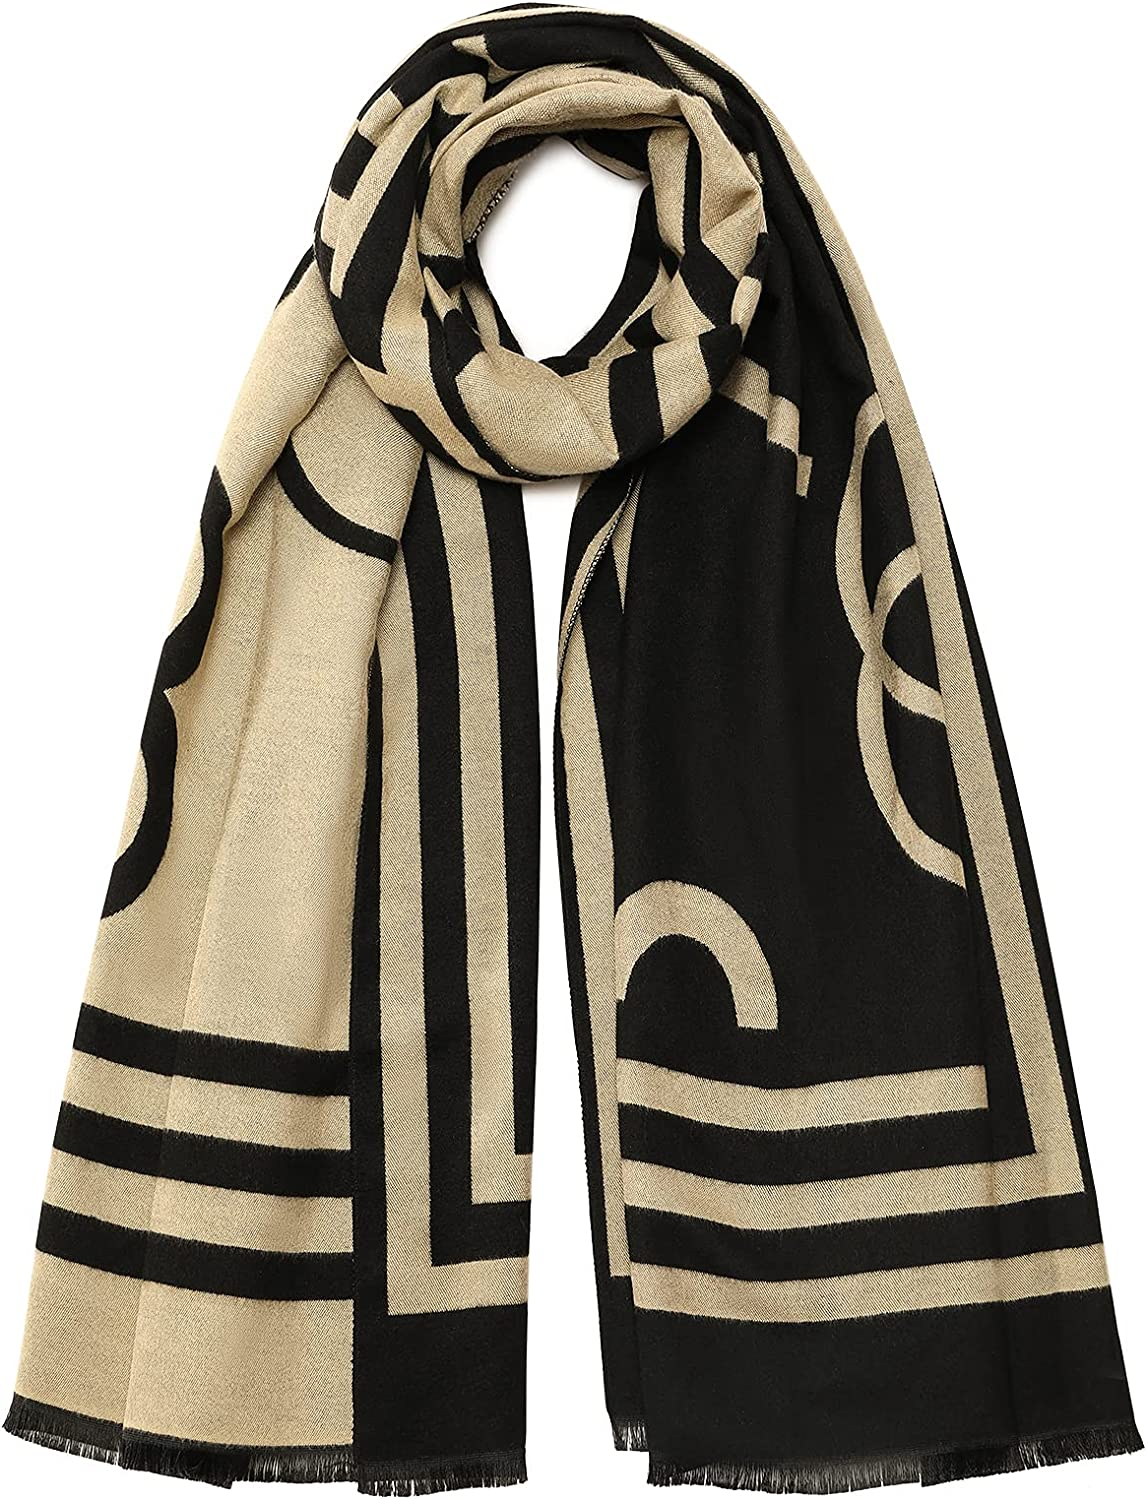 Warm Cashmere Feel Scarf for 5 popular Women and Wra Shawl Winter Pashmina High order